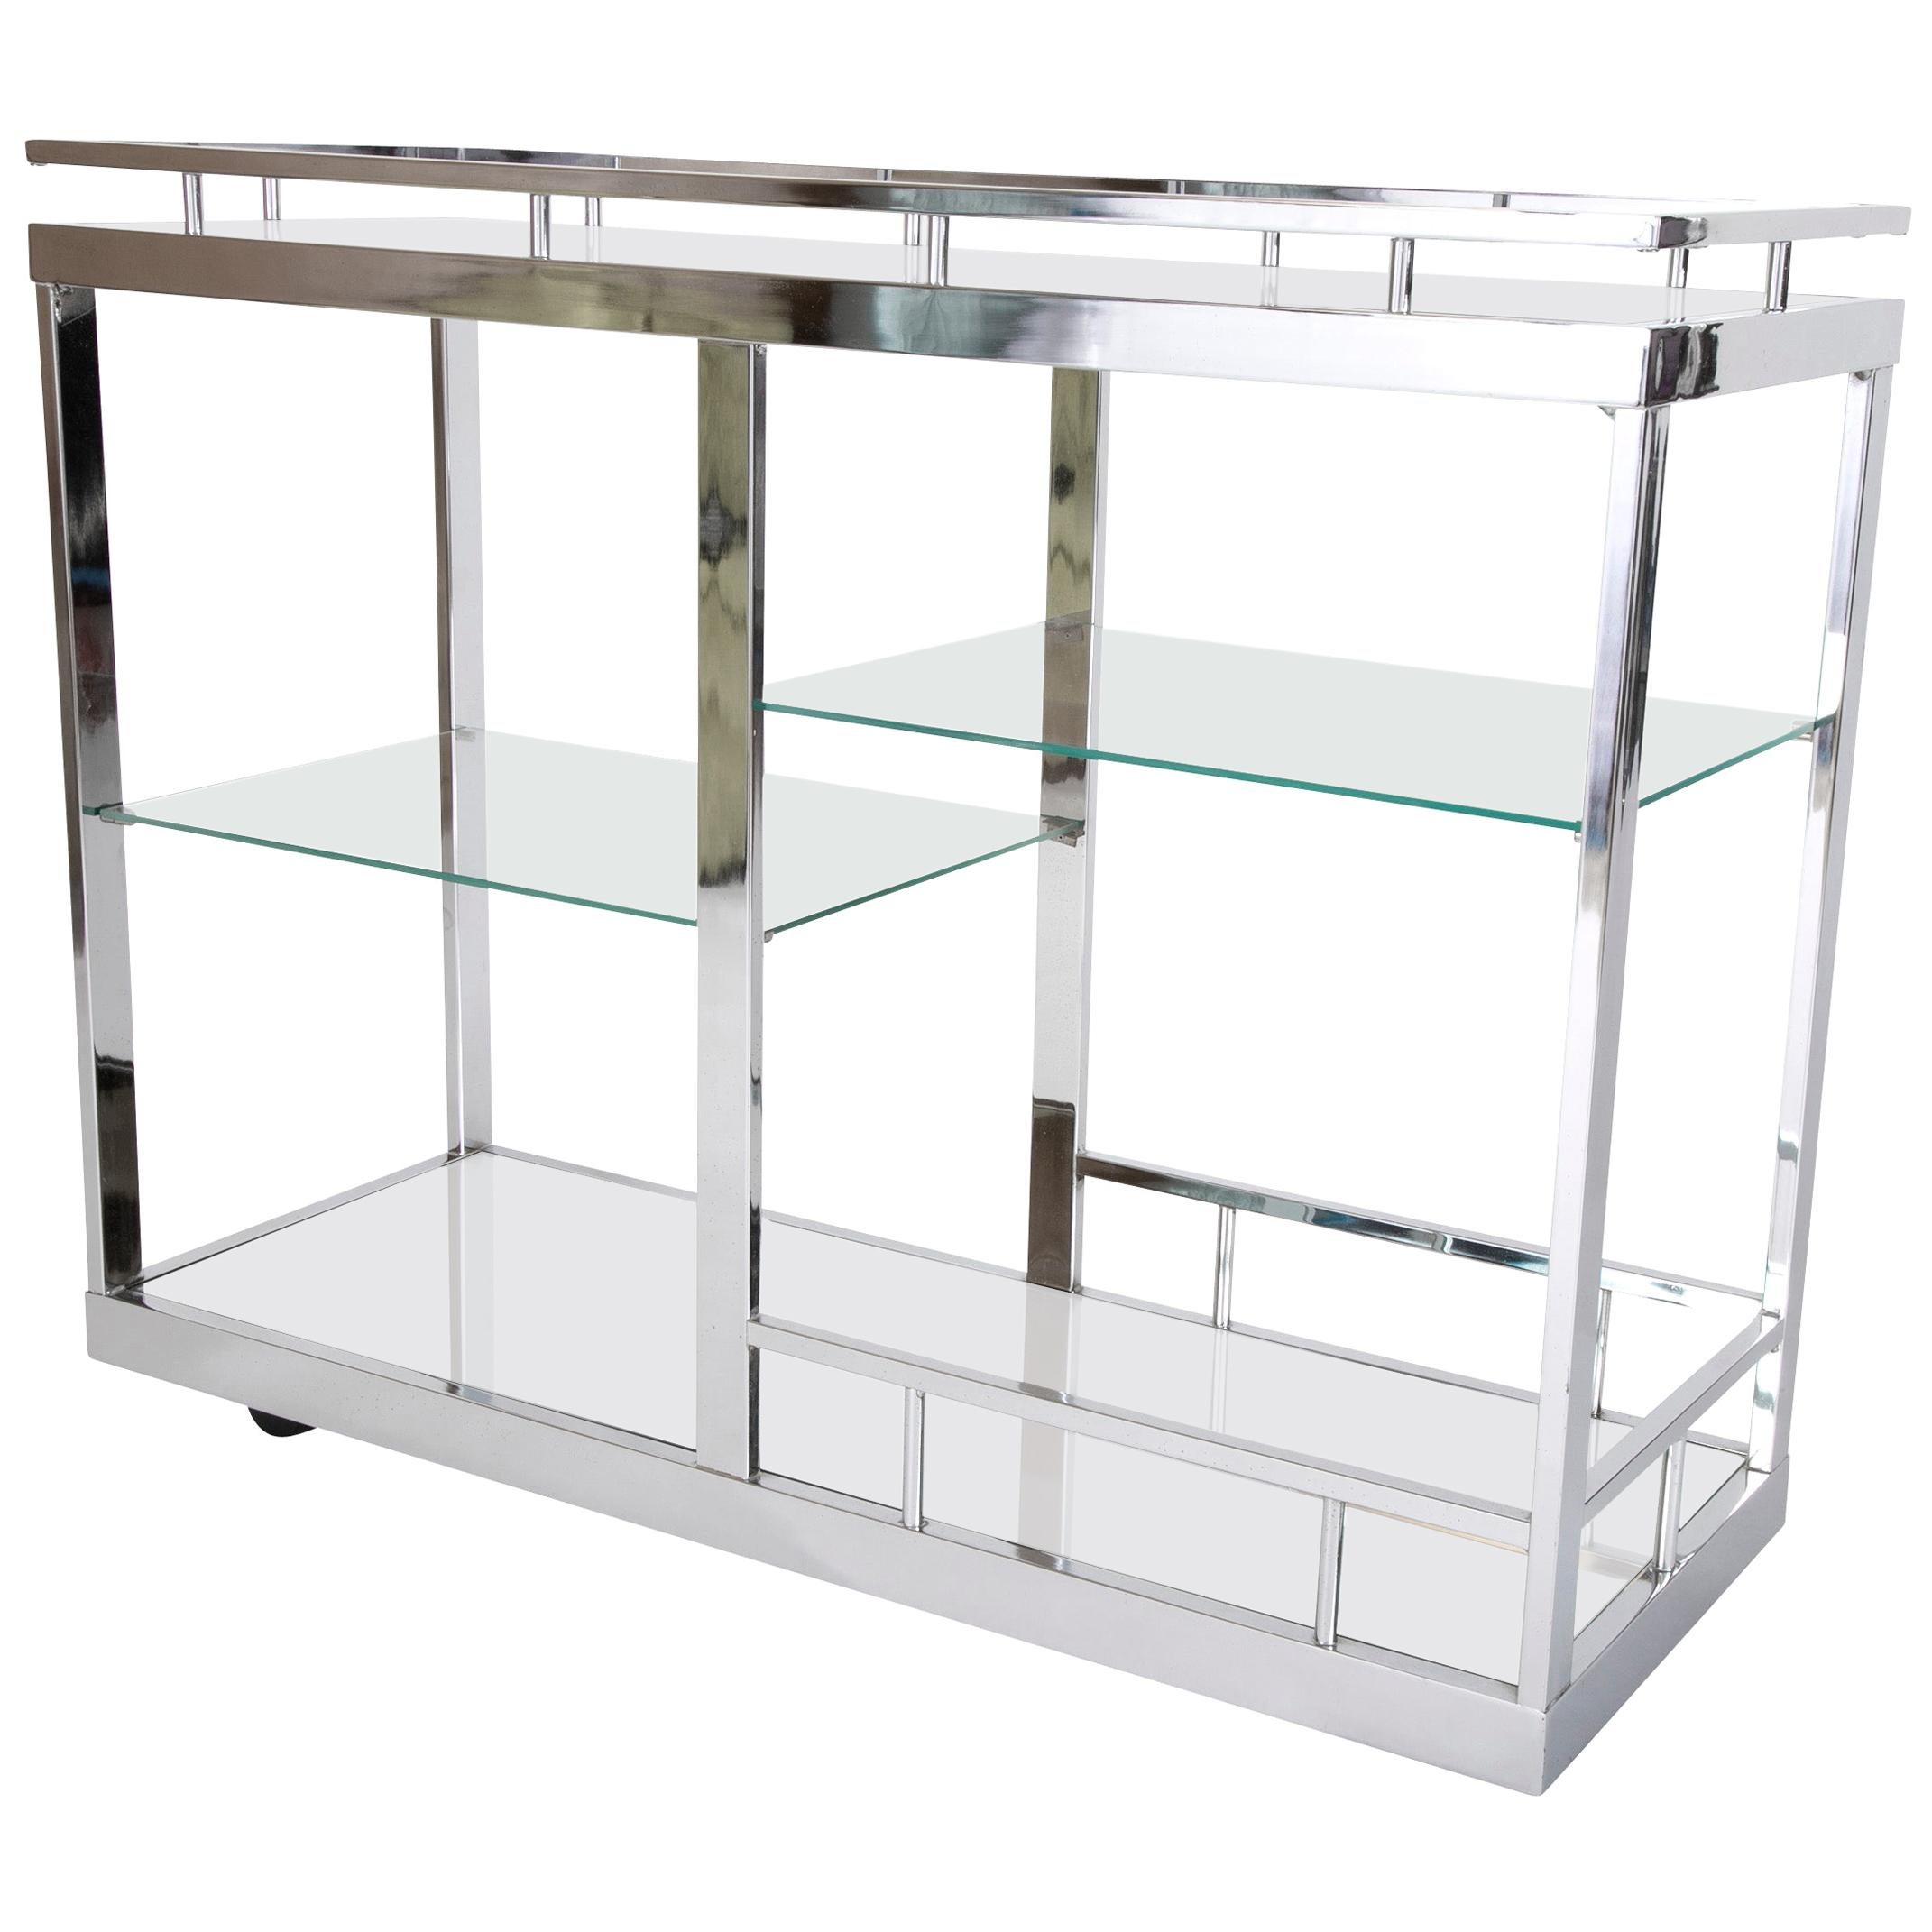 Cocktail or Bar Cart of Chrome and Glass from the Design Institute of America